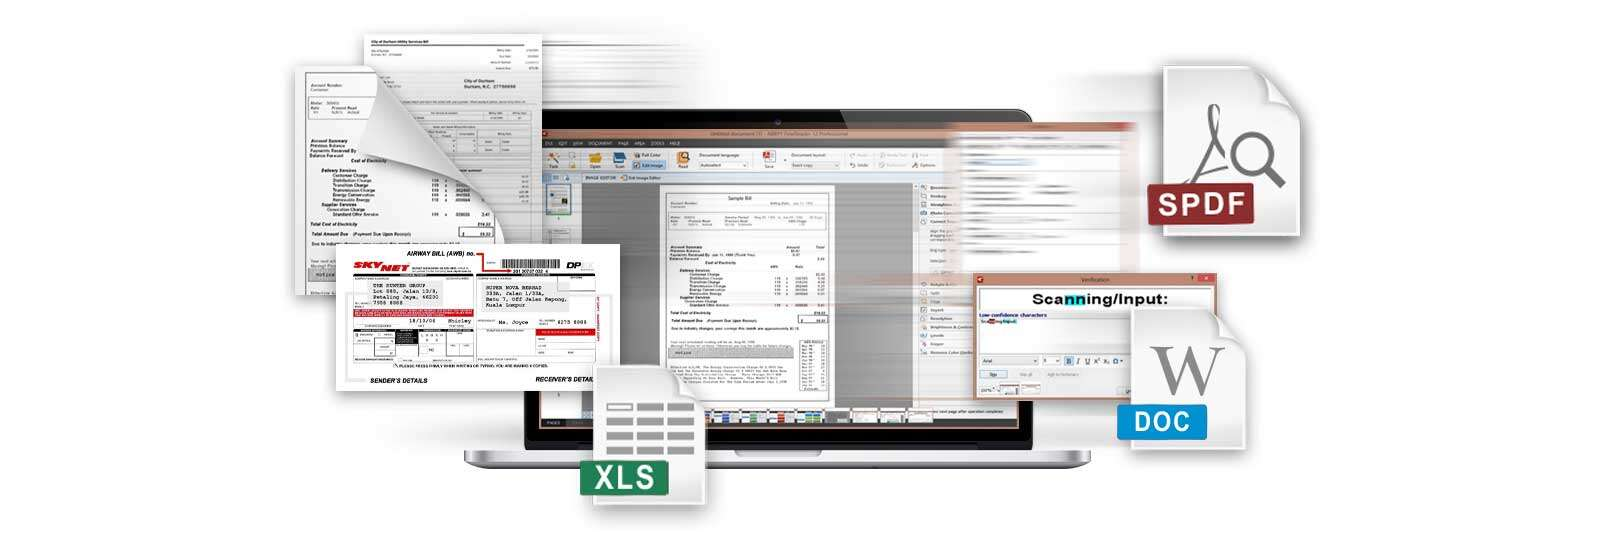 The OpticSlim 550S includes OCR function (powered by ABBYY) that helps to convert scanned paper documents such as receipts/invoice/delivery notes into searchable PDF.